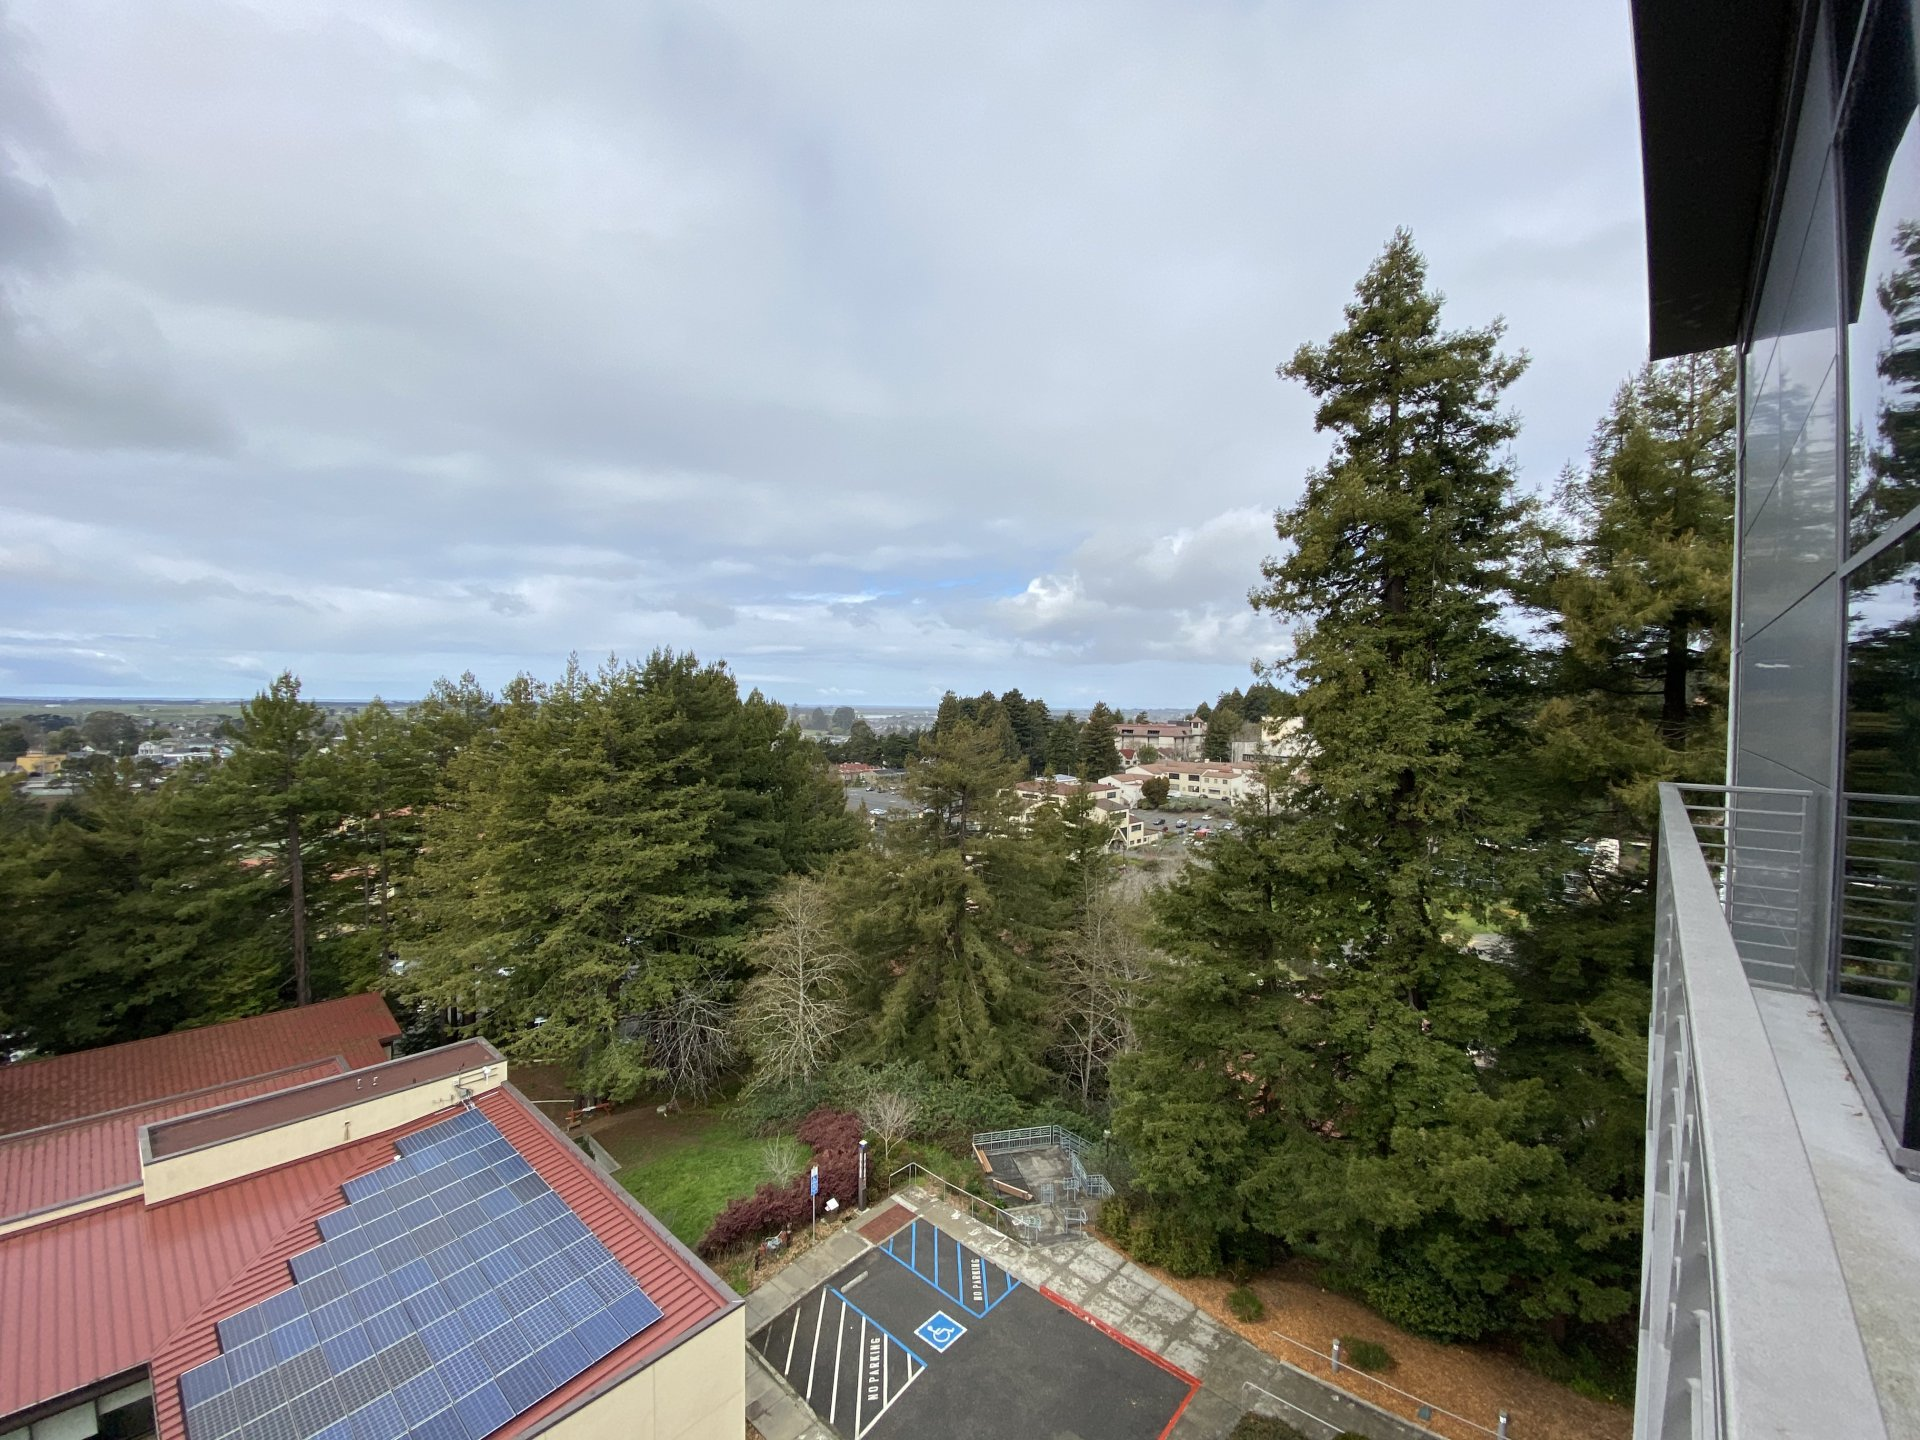 Humboldt State University seen from the top of the Behavioral and Social Sciences building March 23. | Photo by James Wilde